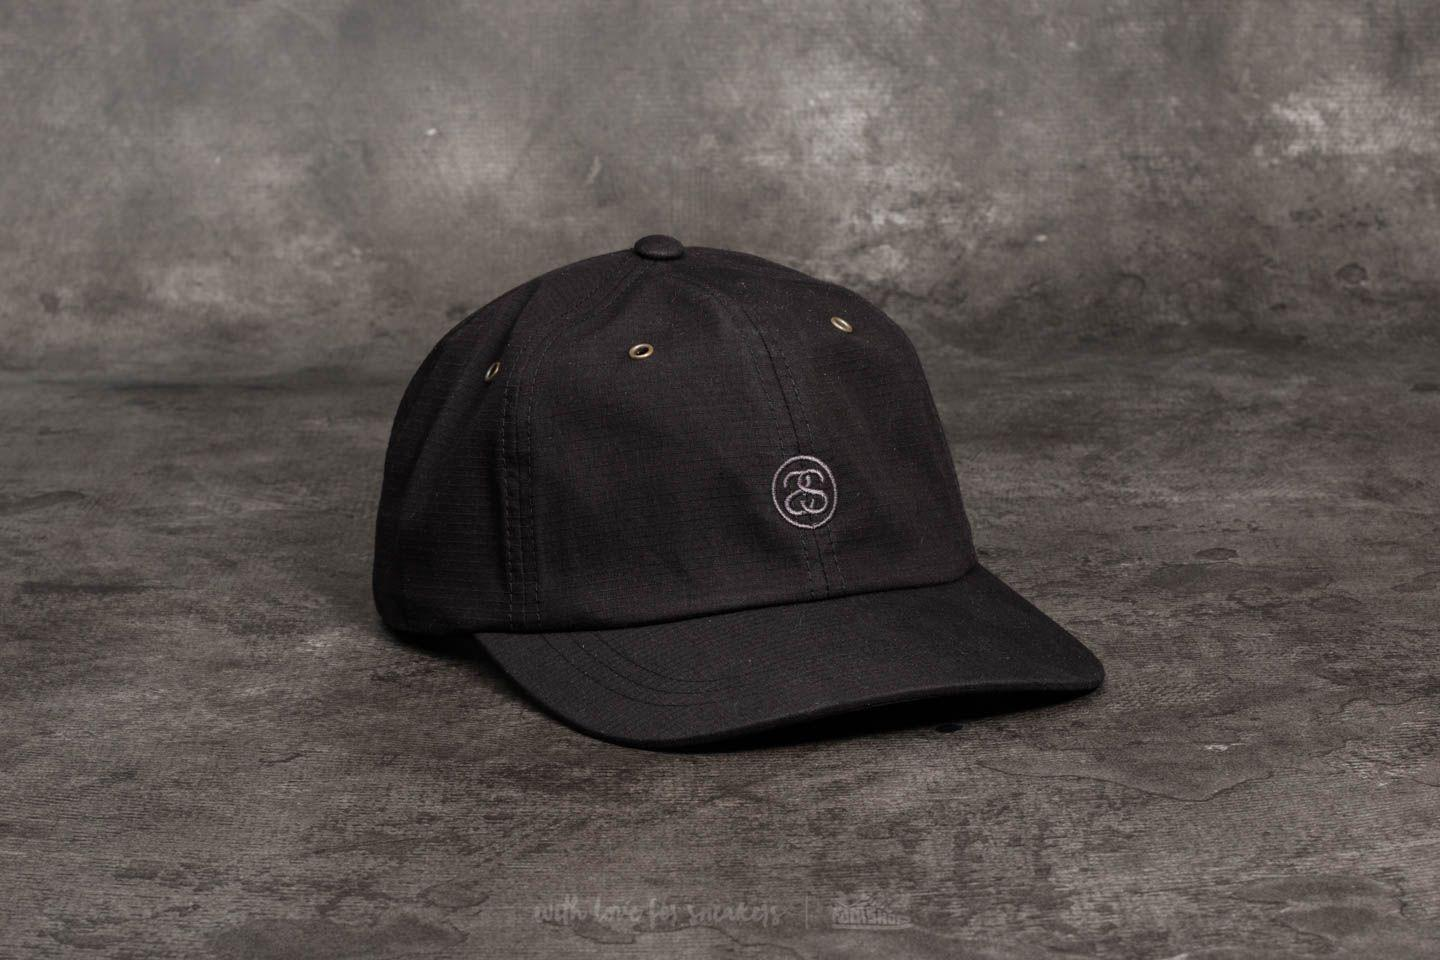 bb980cbe58d Lyst - Stussy Ss-link Ripstop Low Pro Cap Black in Black for Men